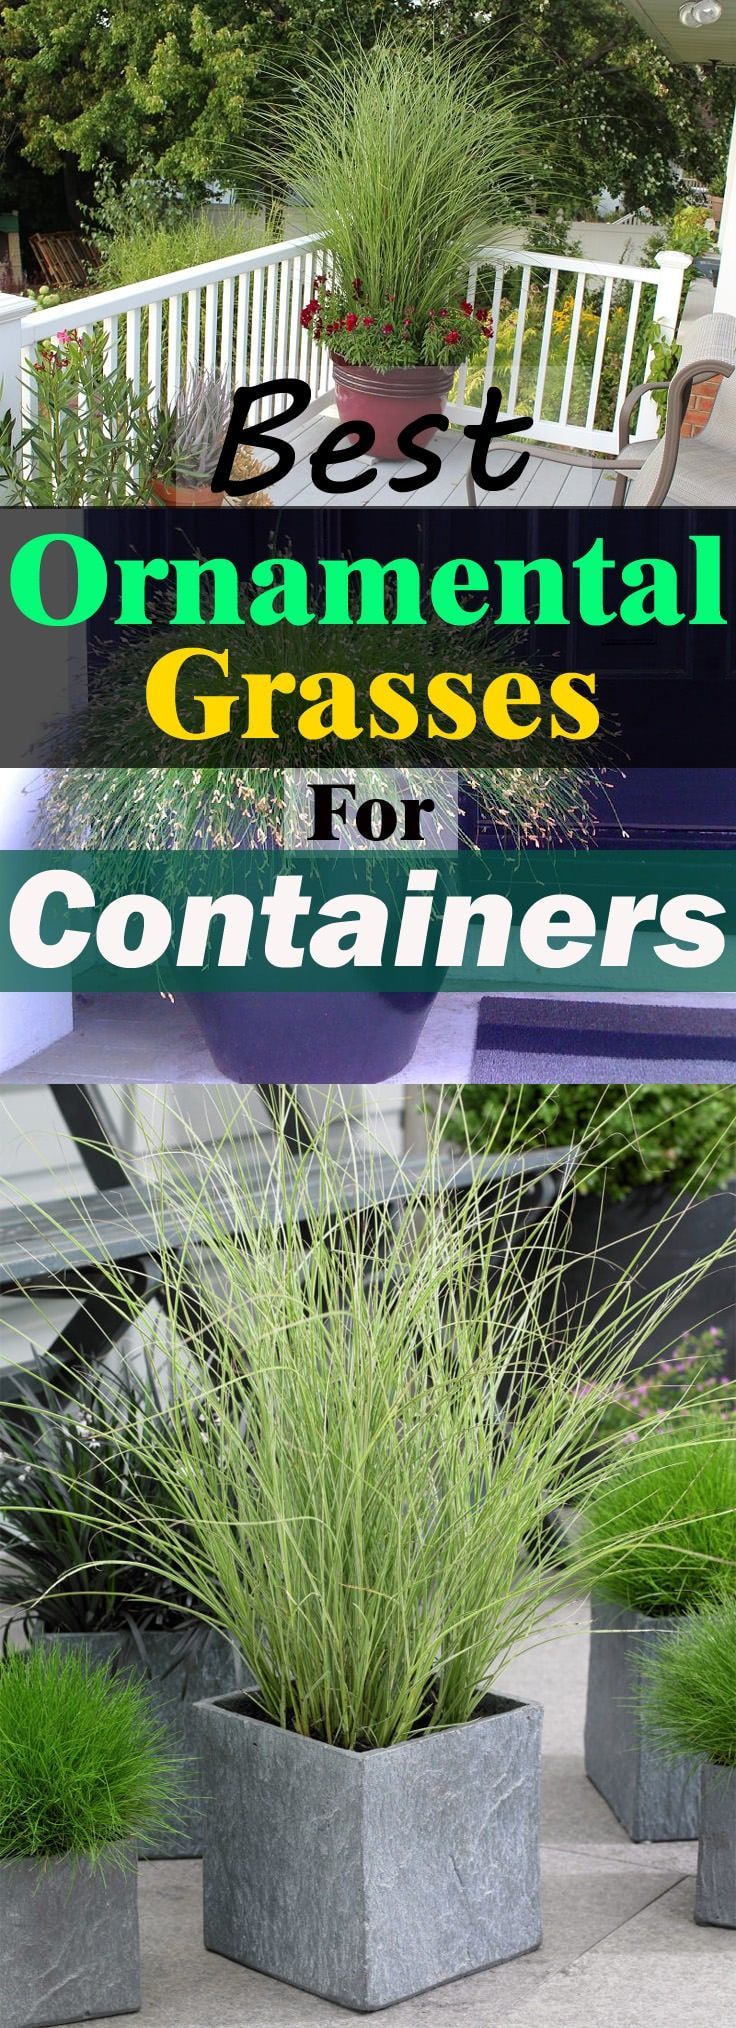 Best Ornamental Grasses for Containers and How to Grow them -   18 plants Outdoor grasses ideas